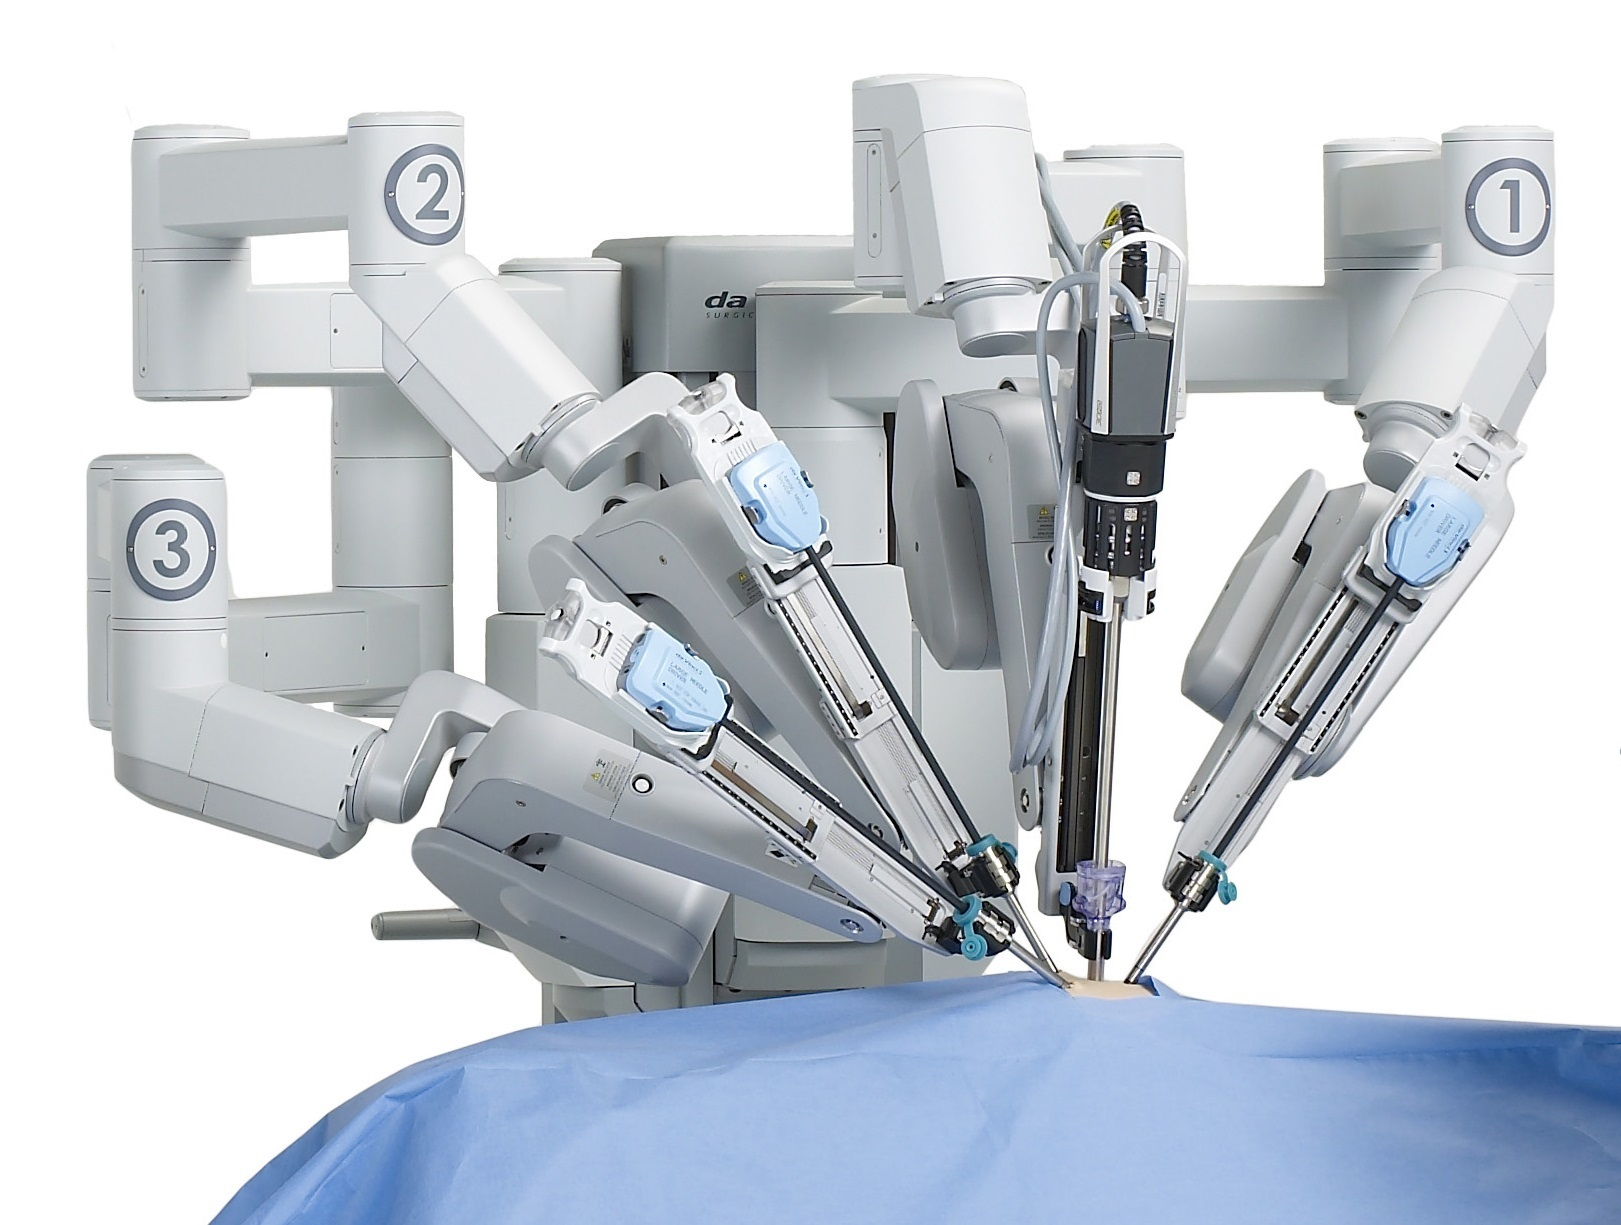 Robotic-assisted surgery for cancer treatment